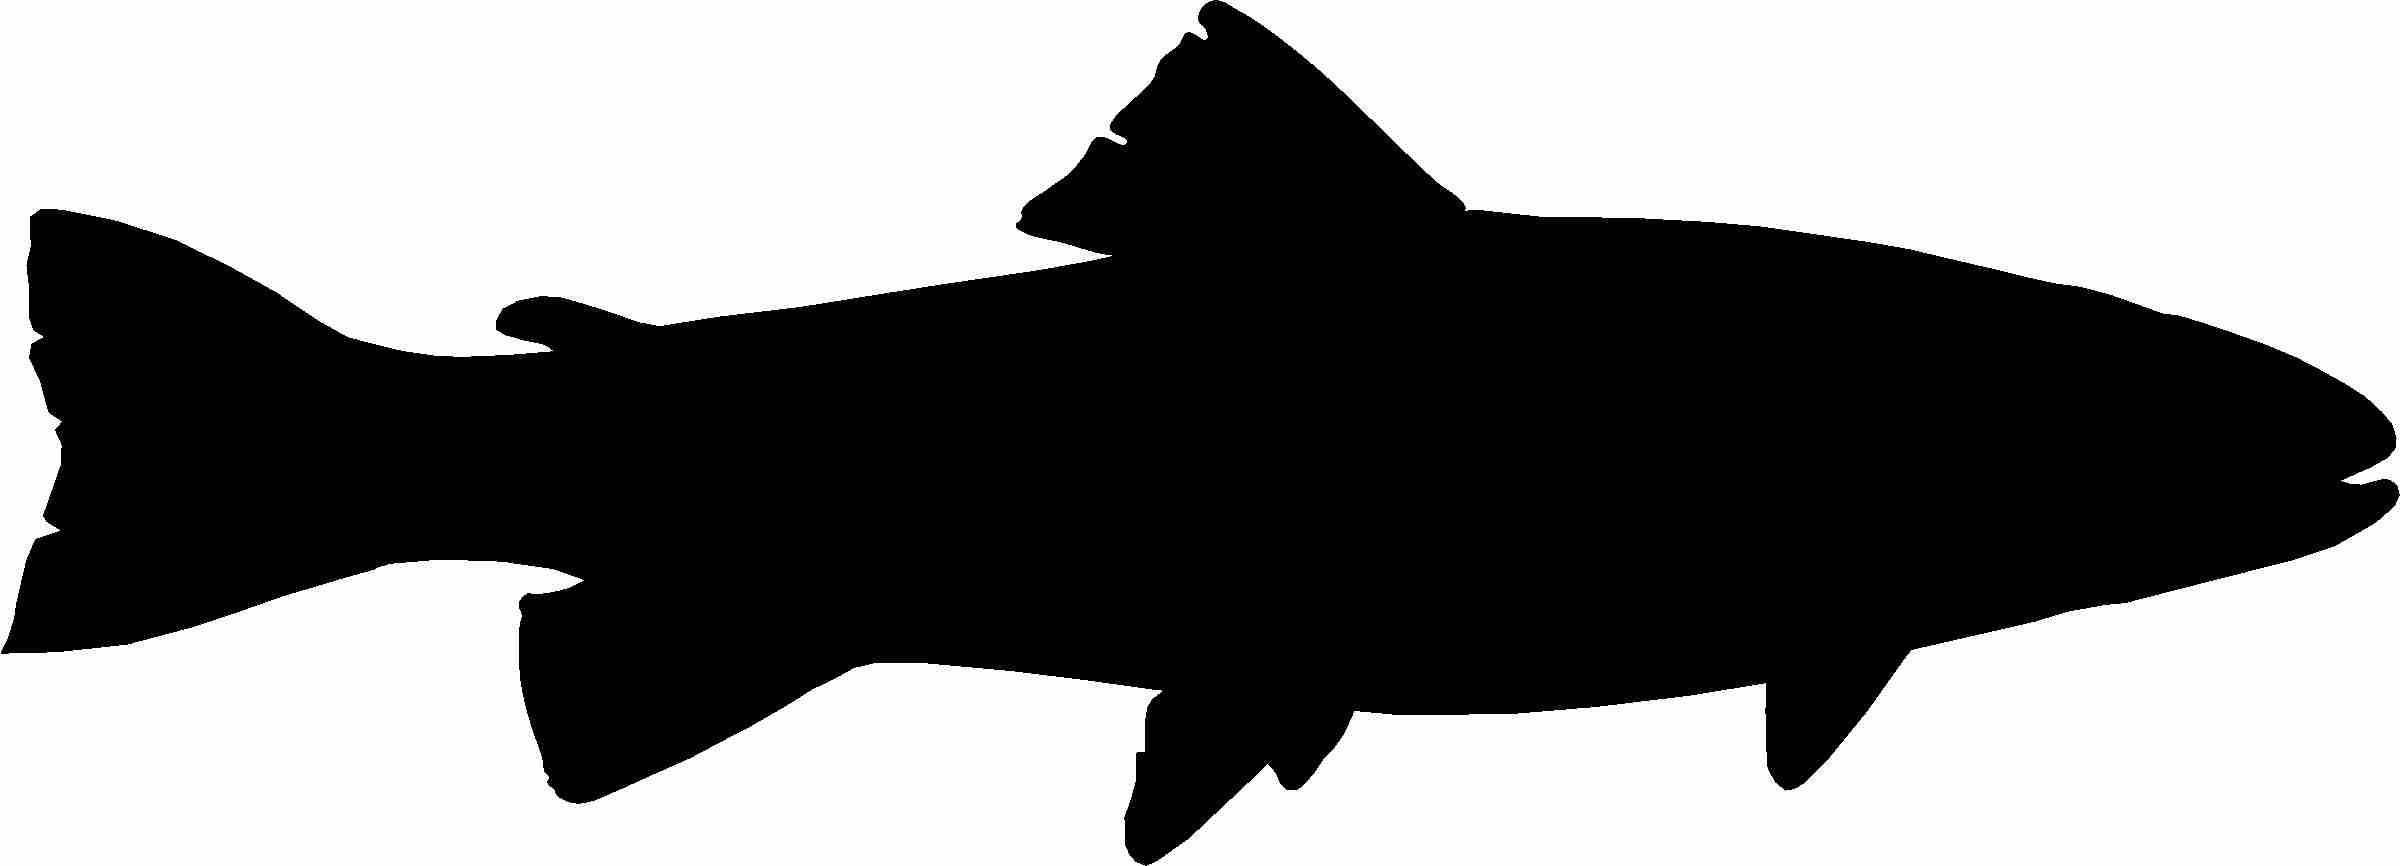 2400x866 Trout Silhouette Icons Png Free And Downloads Brilliant